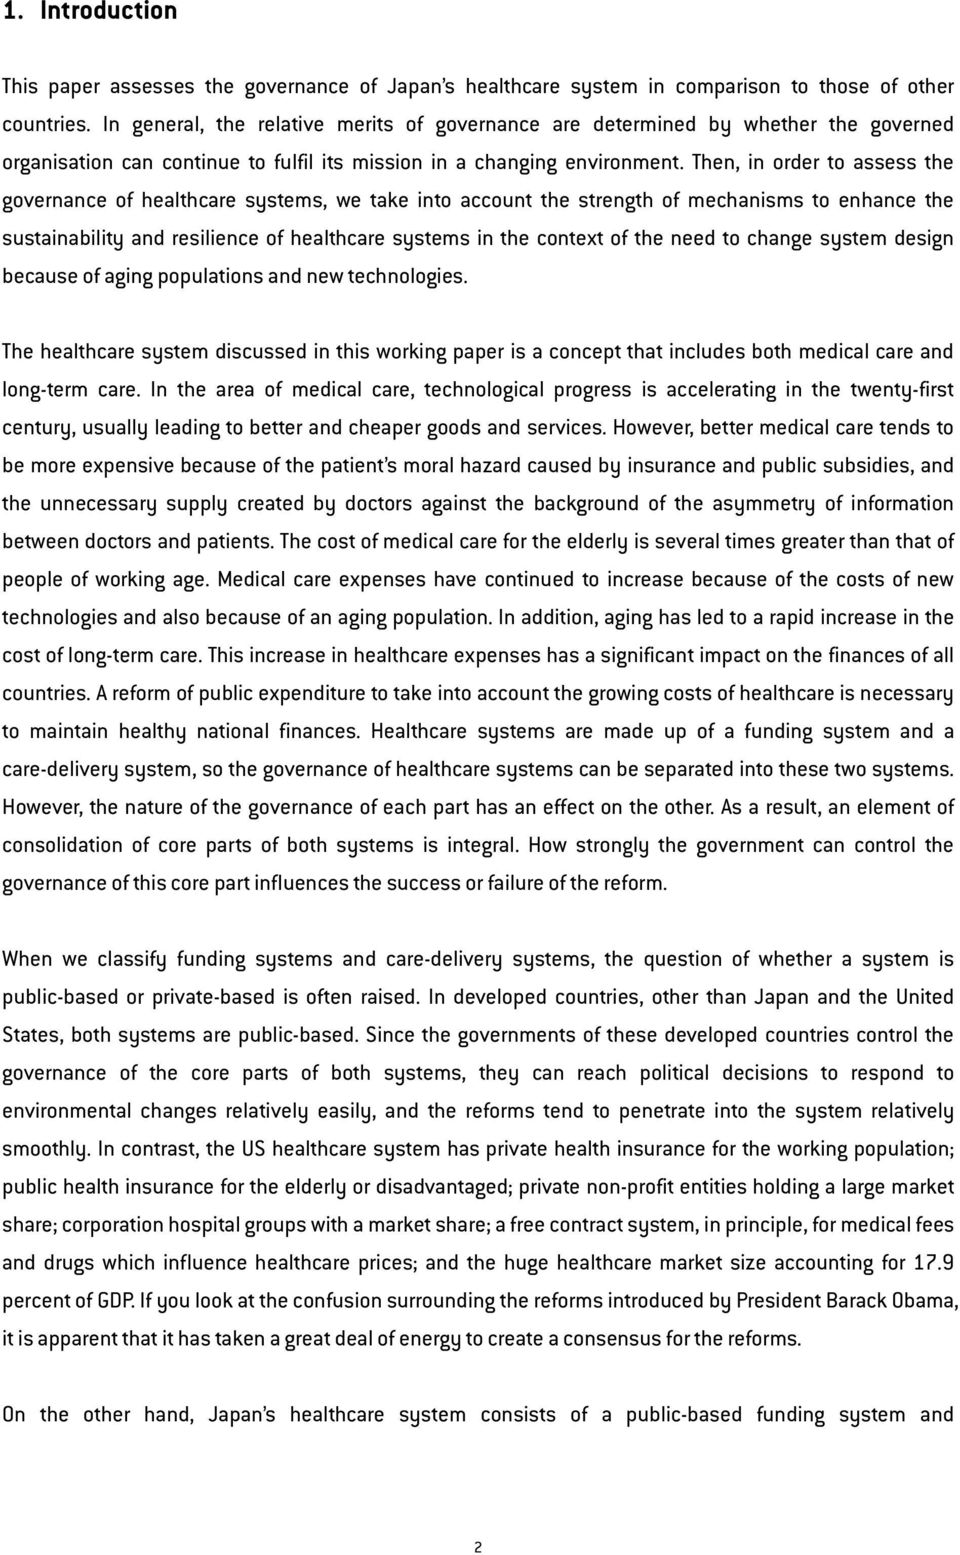 Then, in order to assess the governance of healthcare systems, we take into account the strength of mechanisms to enhance the sustainability and resilience of healthcare systems in the context of the